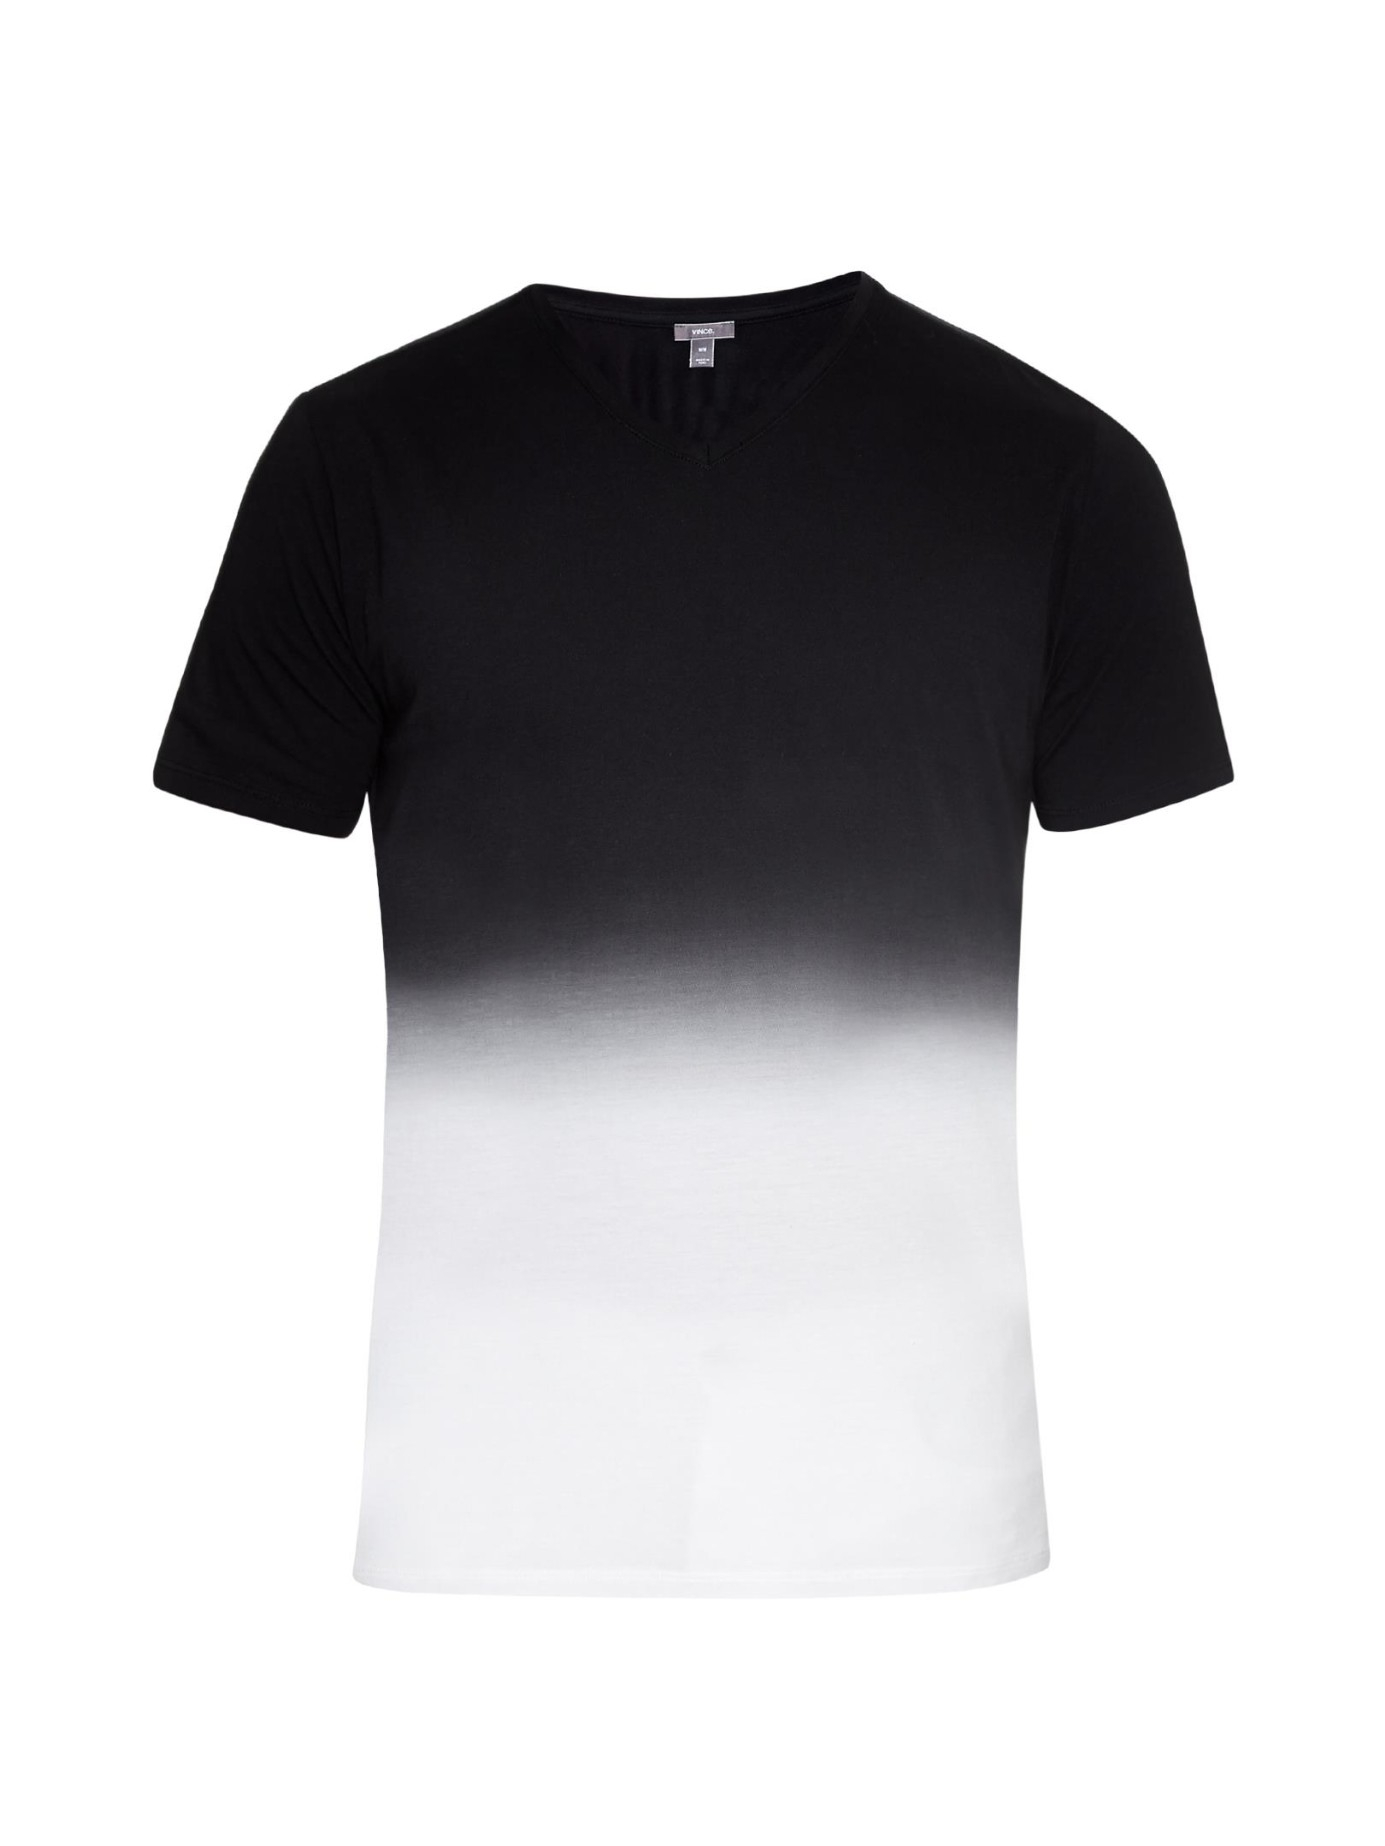 Vince dip dye cotton top in black for men lyst for Vince tee shirts sale